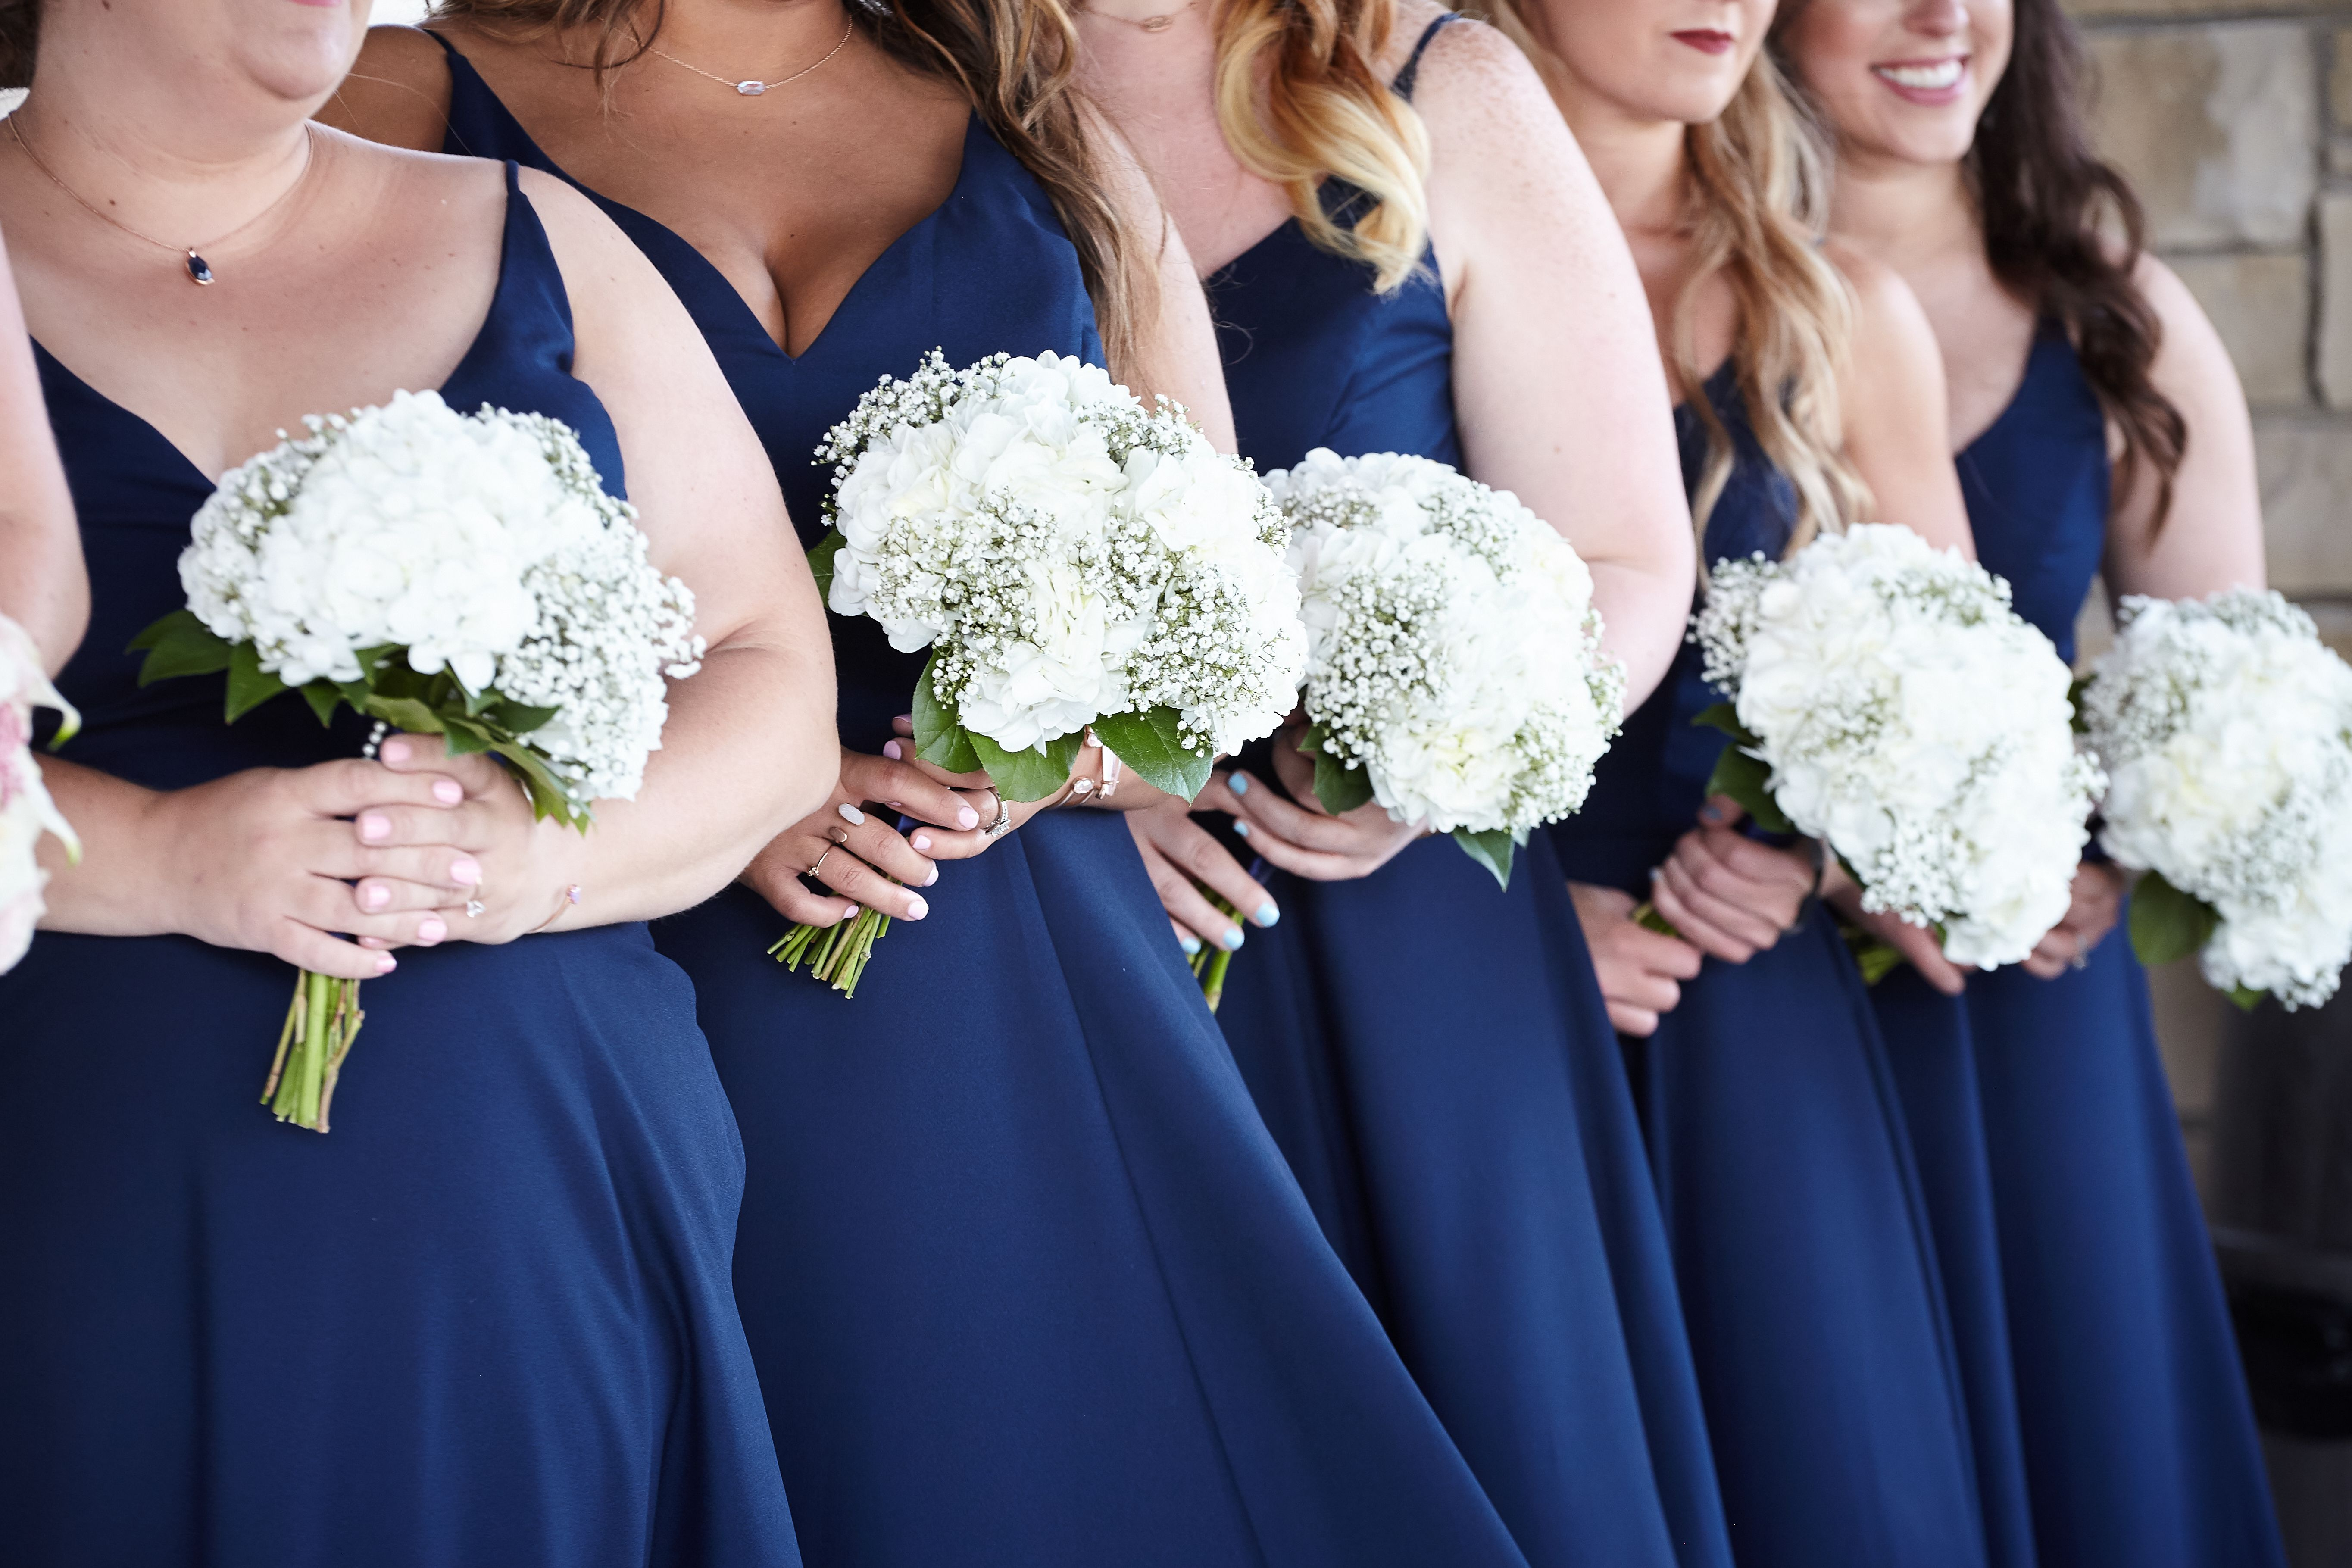 Benken Bridalparty Handtied Style With Hydrangeas Babysbreath And Other In Whites Ivory Cream Colors With Greenery Has Rhinestonew Bridal Party Flowers